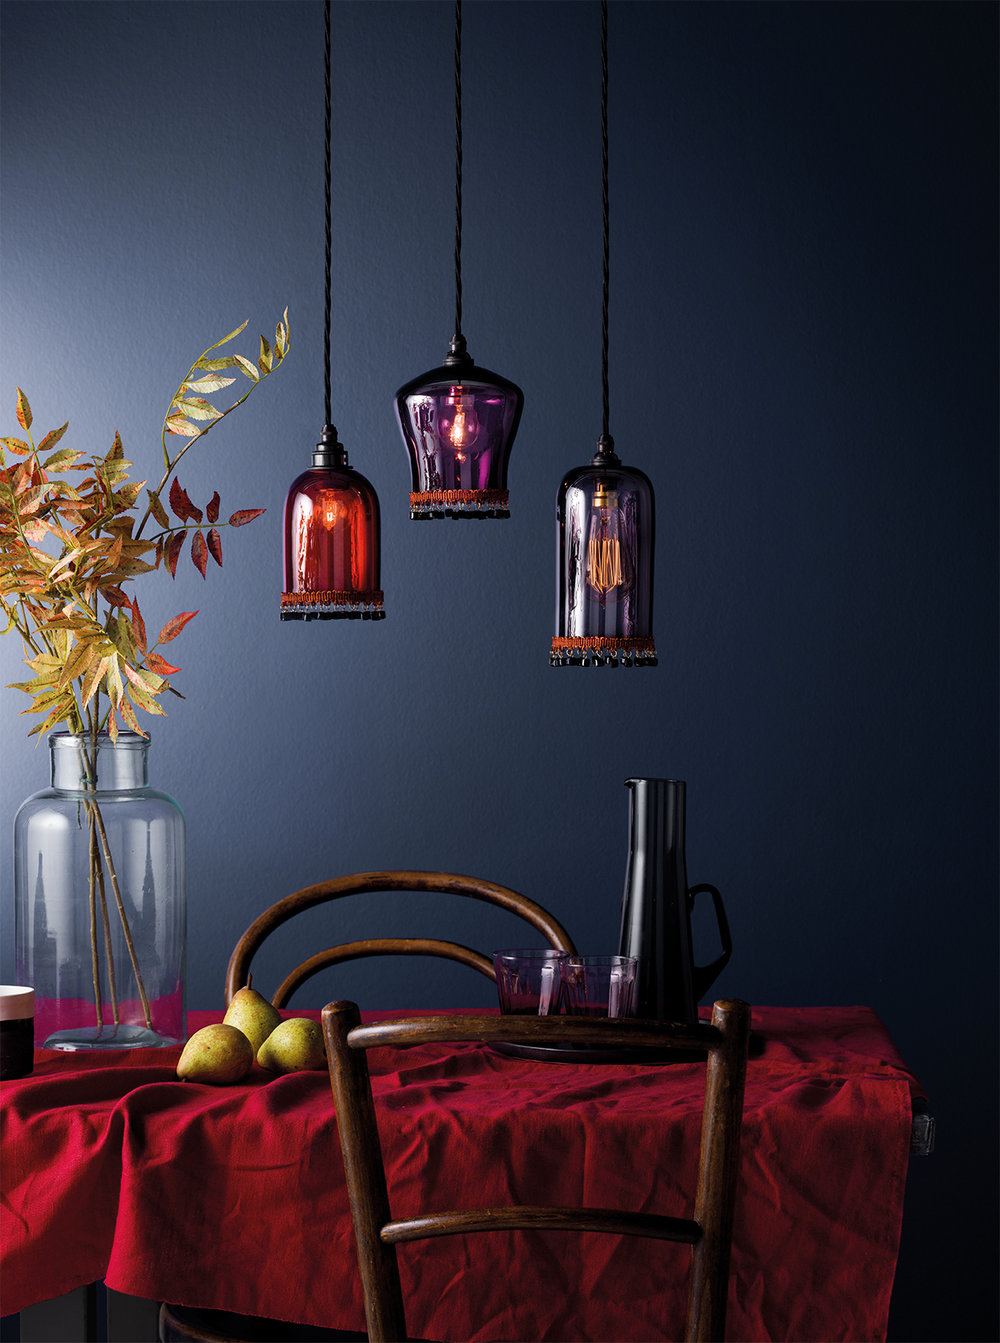 Curiousa_Caravaggio_opulent_glass_pendant_lights.jpg